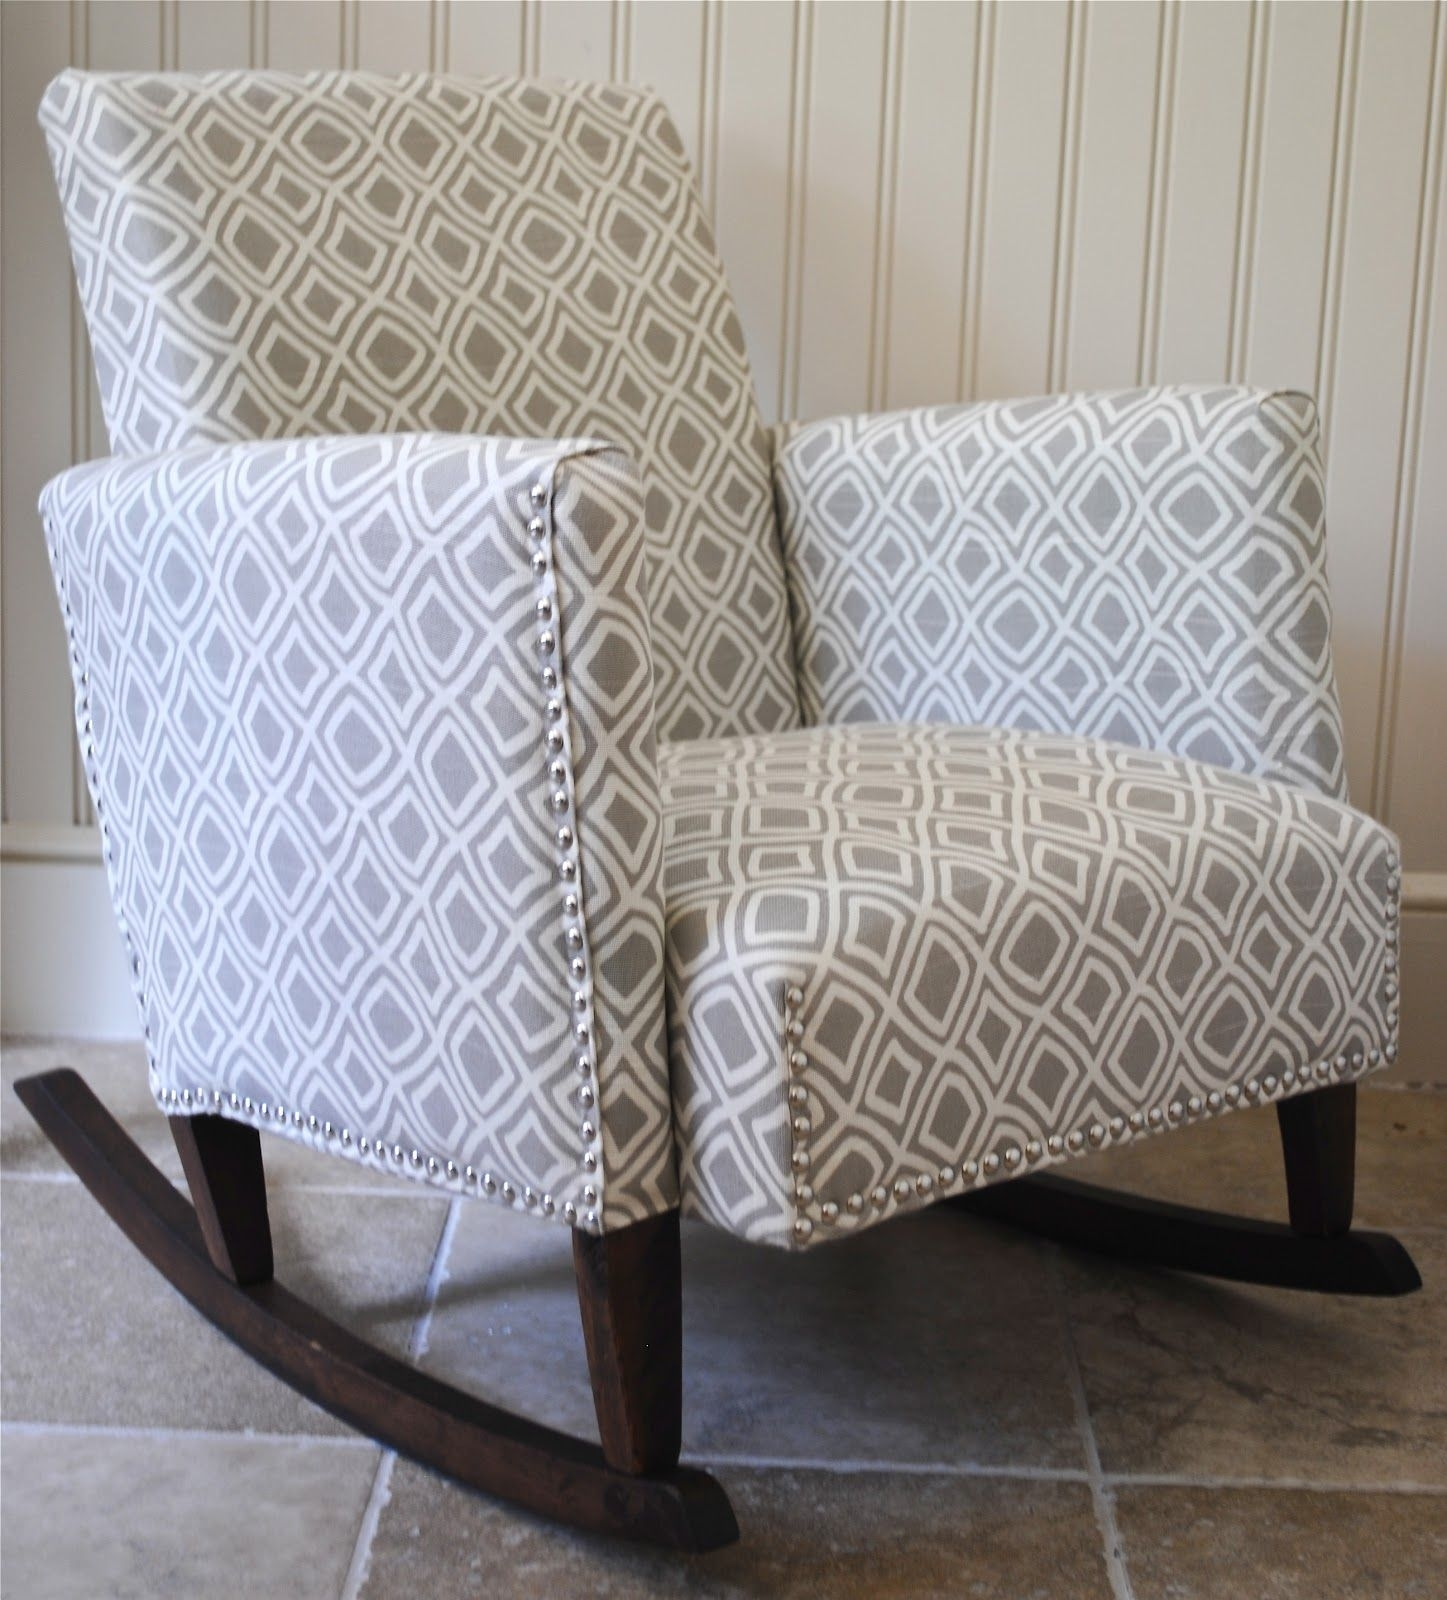 Inspiration about Diy}Ish Upholstered Child's Rocking Chair | Craft Ideas | Pinterest Throughout Upholstered Rocking Chairs (#6 of 15)